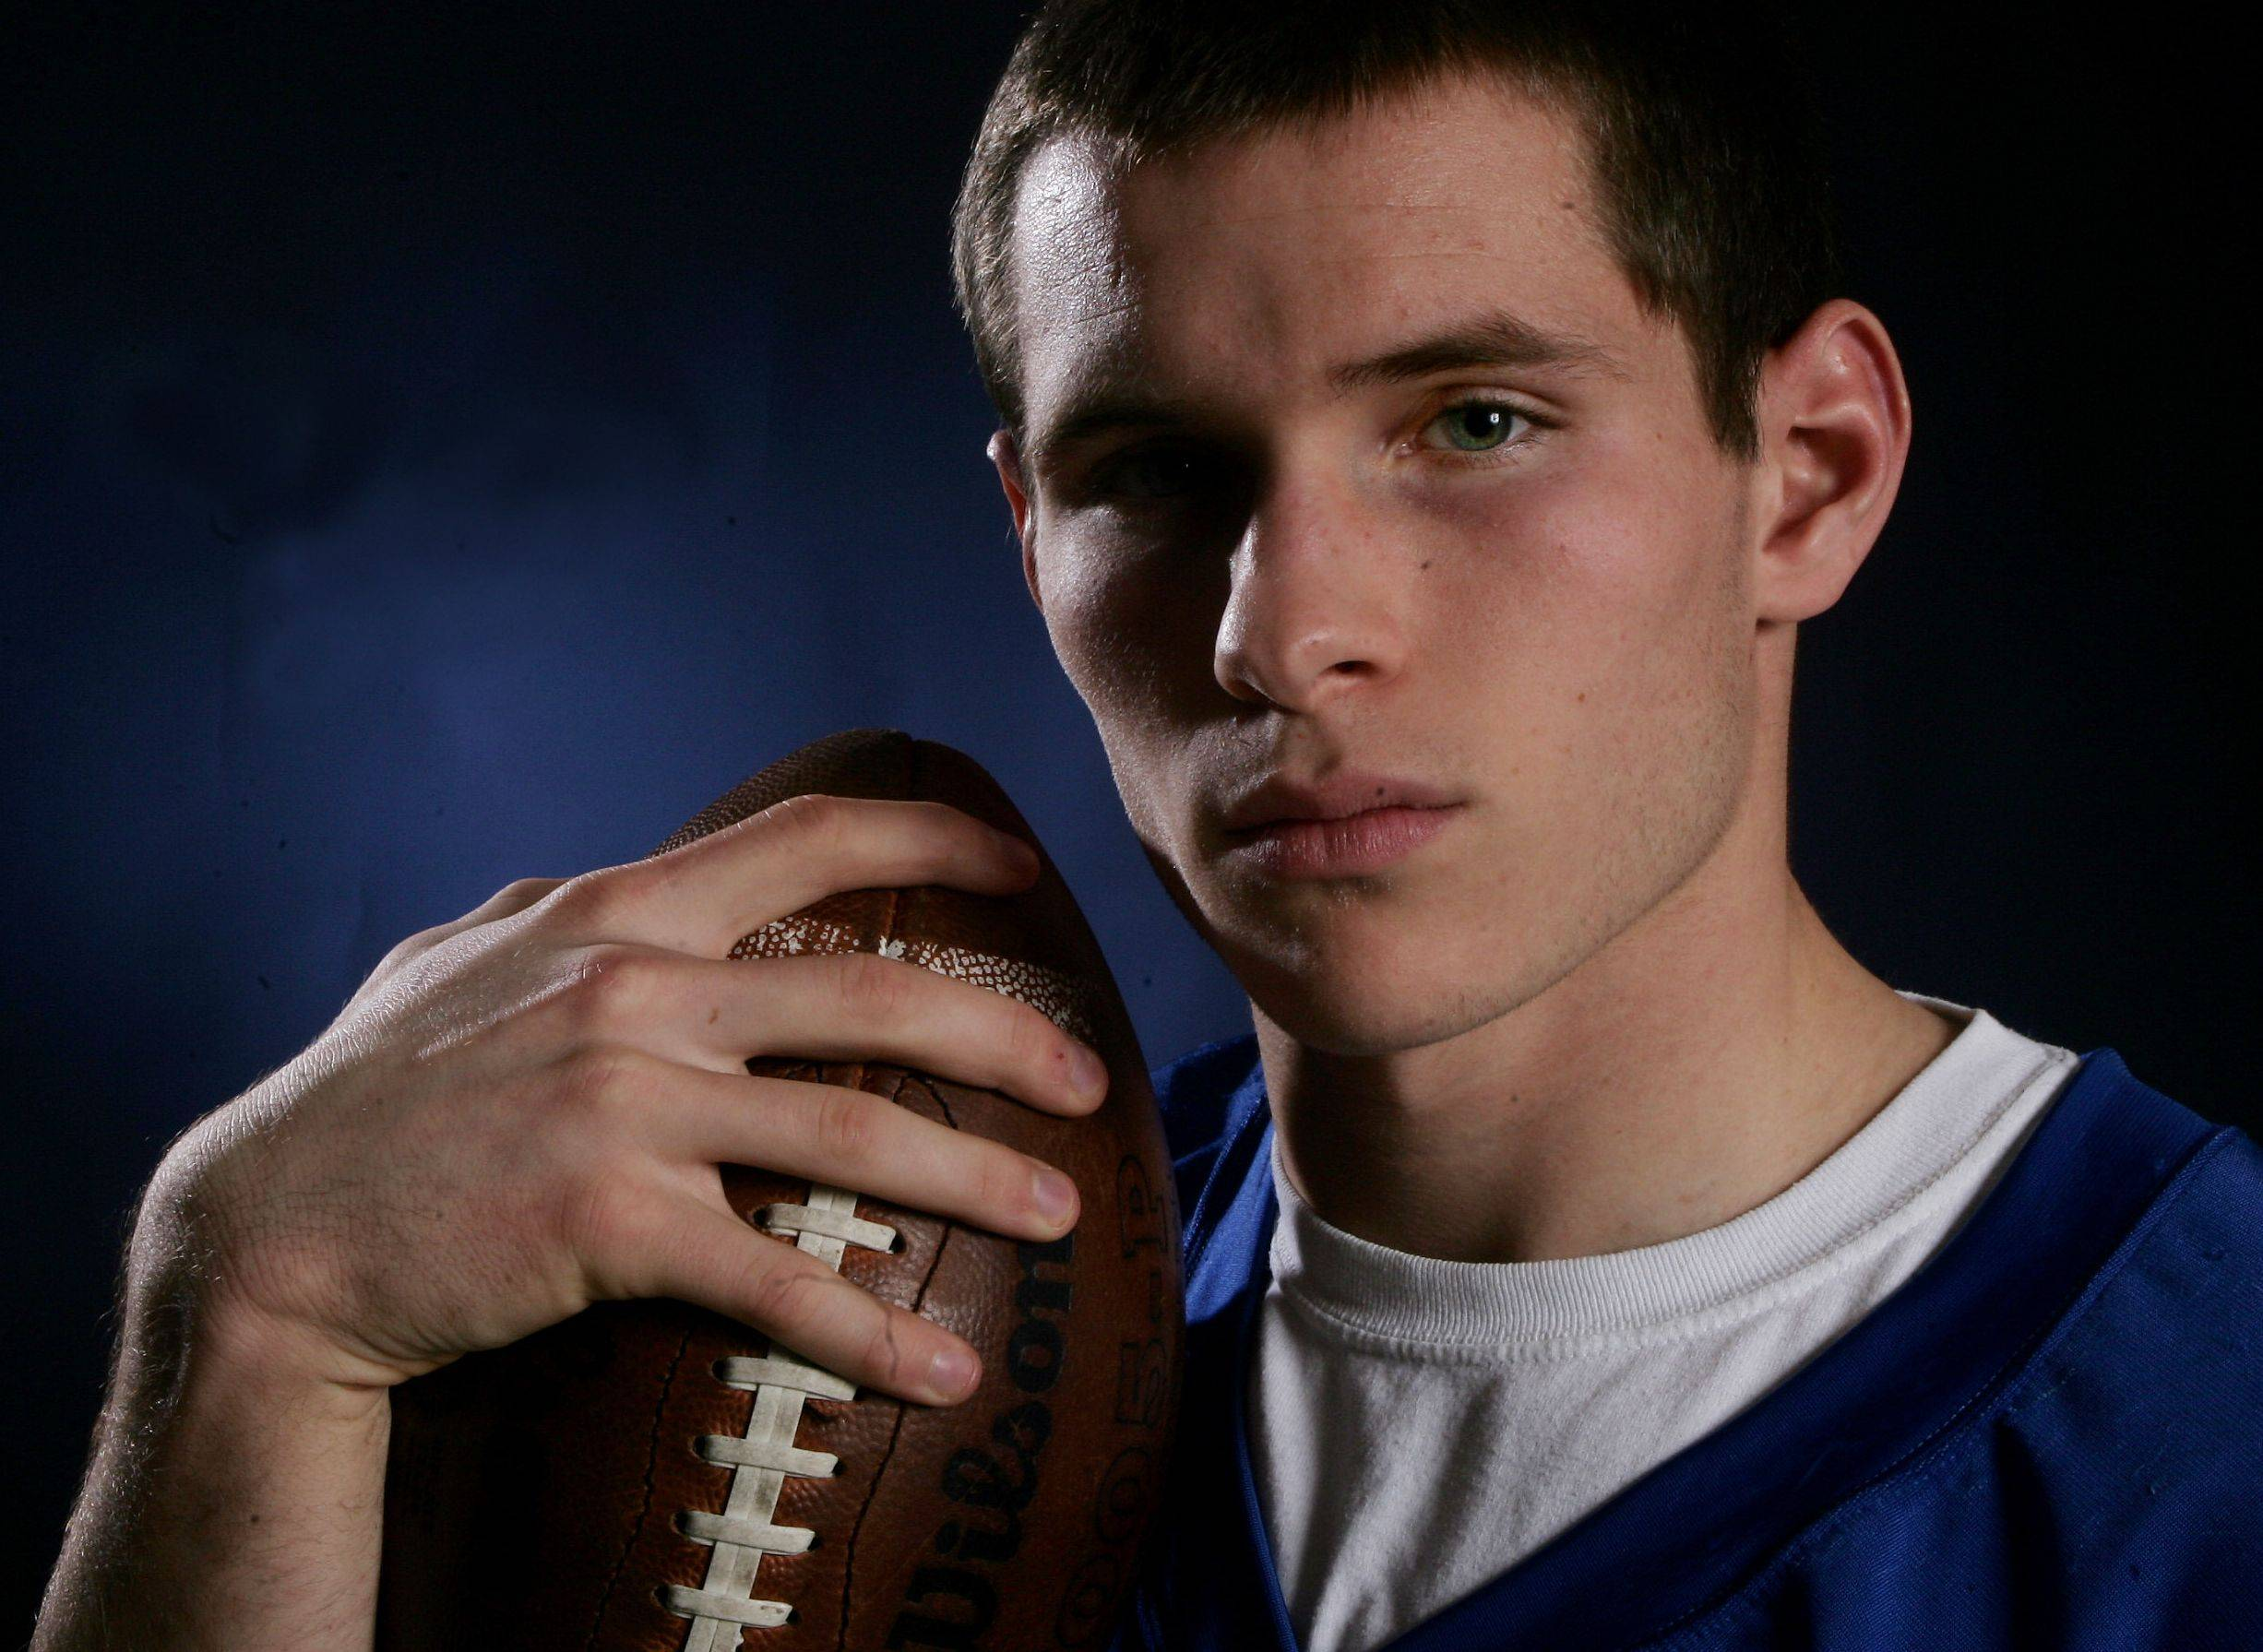 In 2010, Jacob Brinlee was a star running back for Lake Zurich High School and captain of the Lake County Daily Herald All-Area Football Team. As a walk-on at Northern Illinois last season, he saw action in eight games.